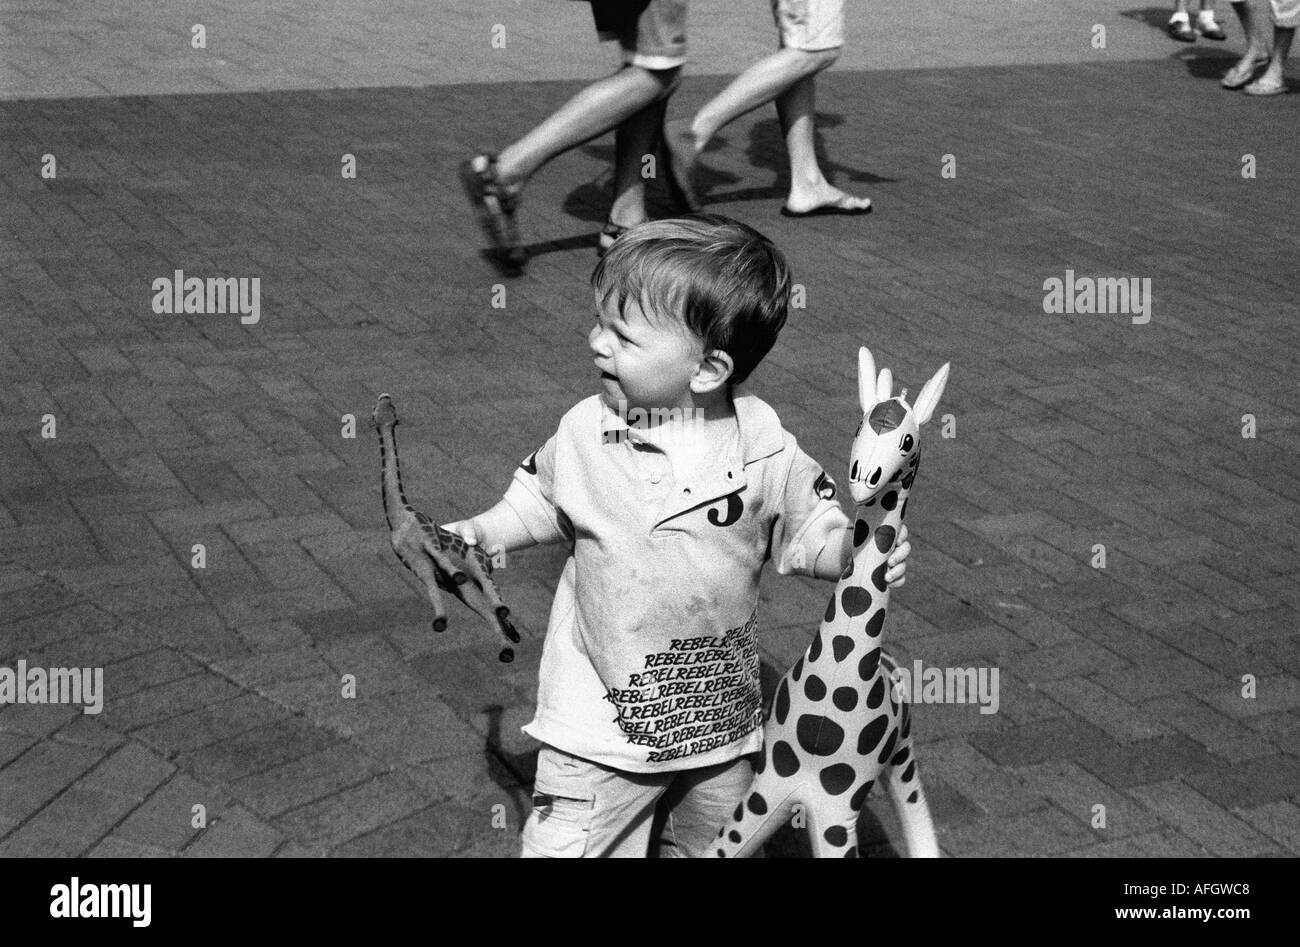 a young boy with toy giraffes - Stock Image